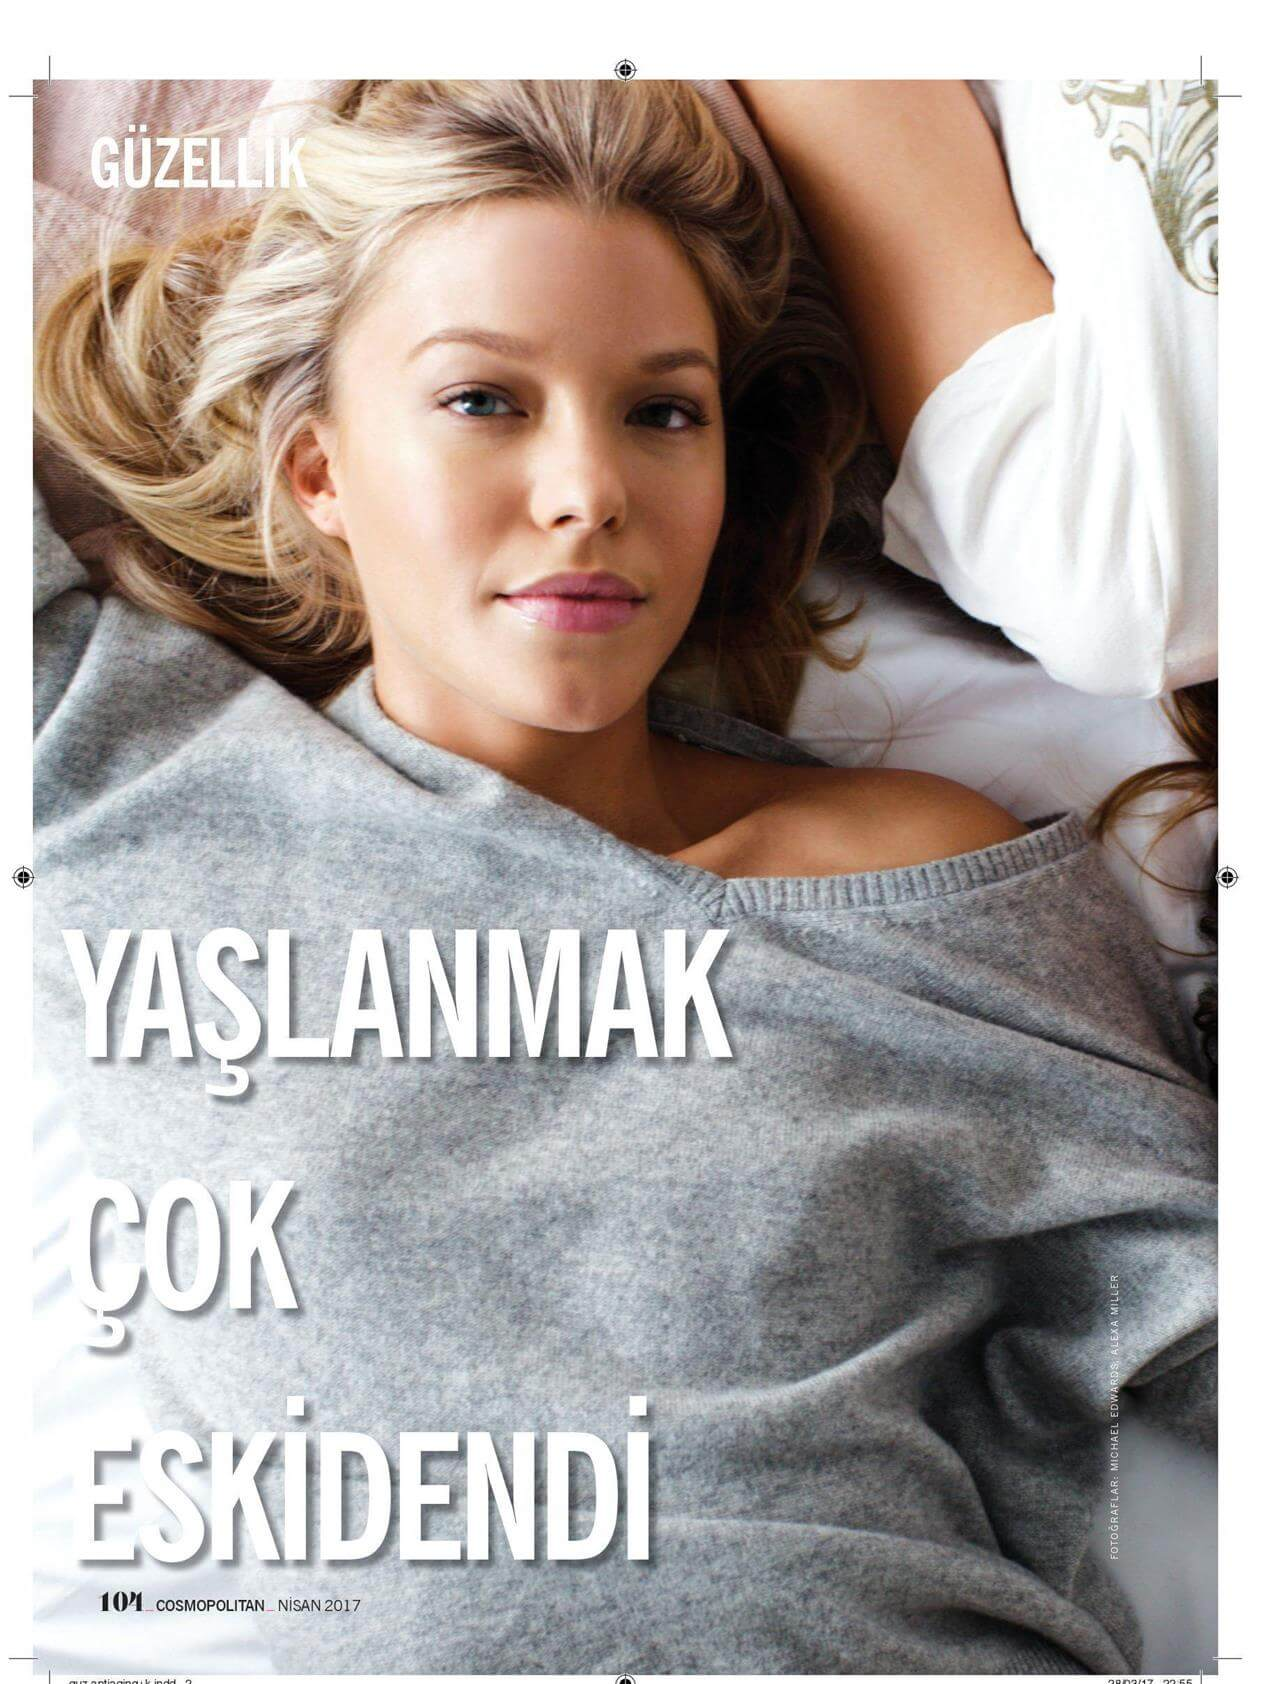 YAŞLANMAK ÇOK ESKİDENDİ